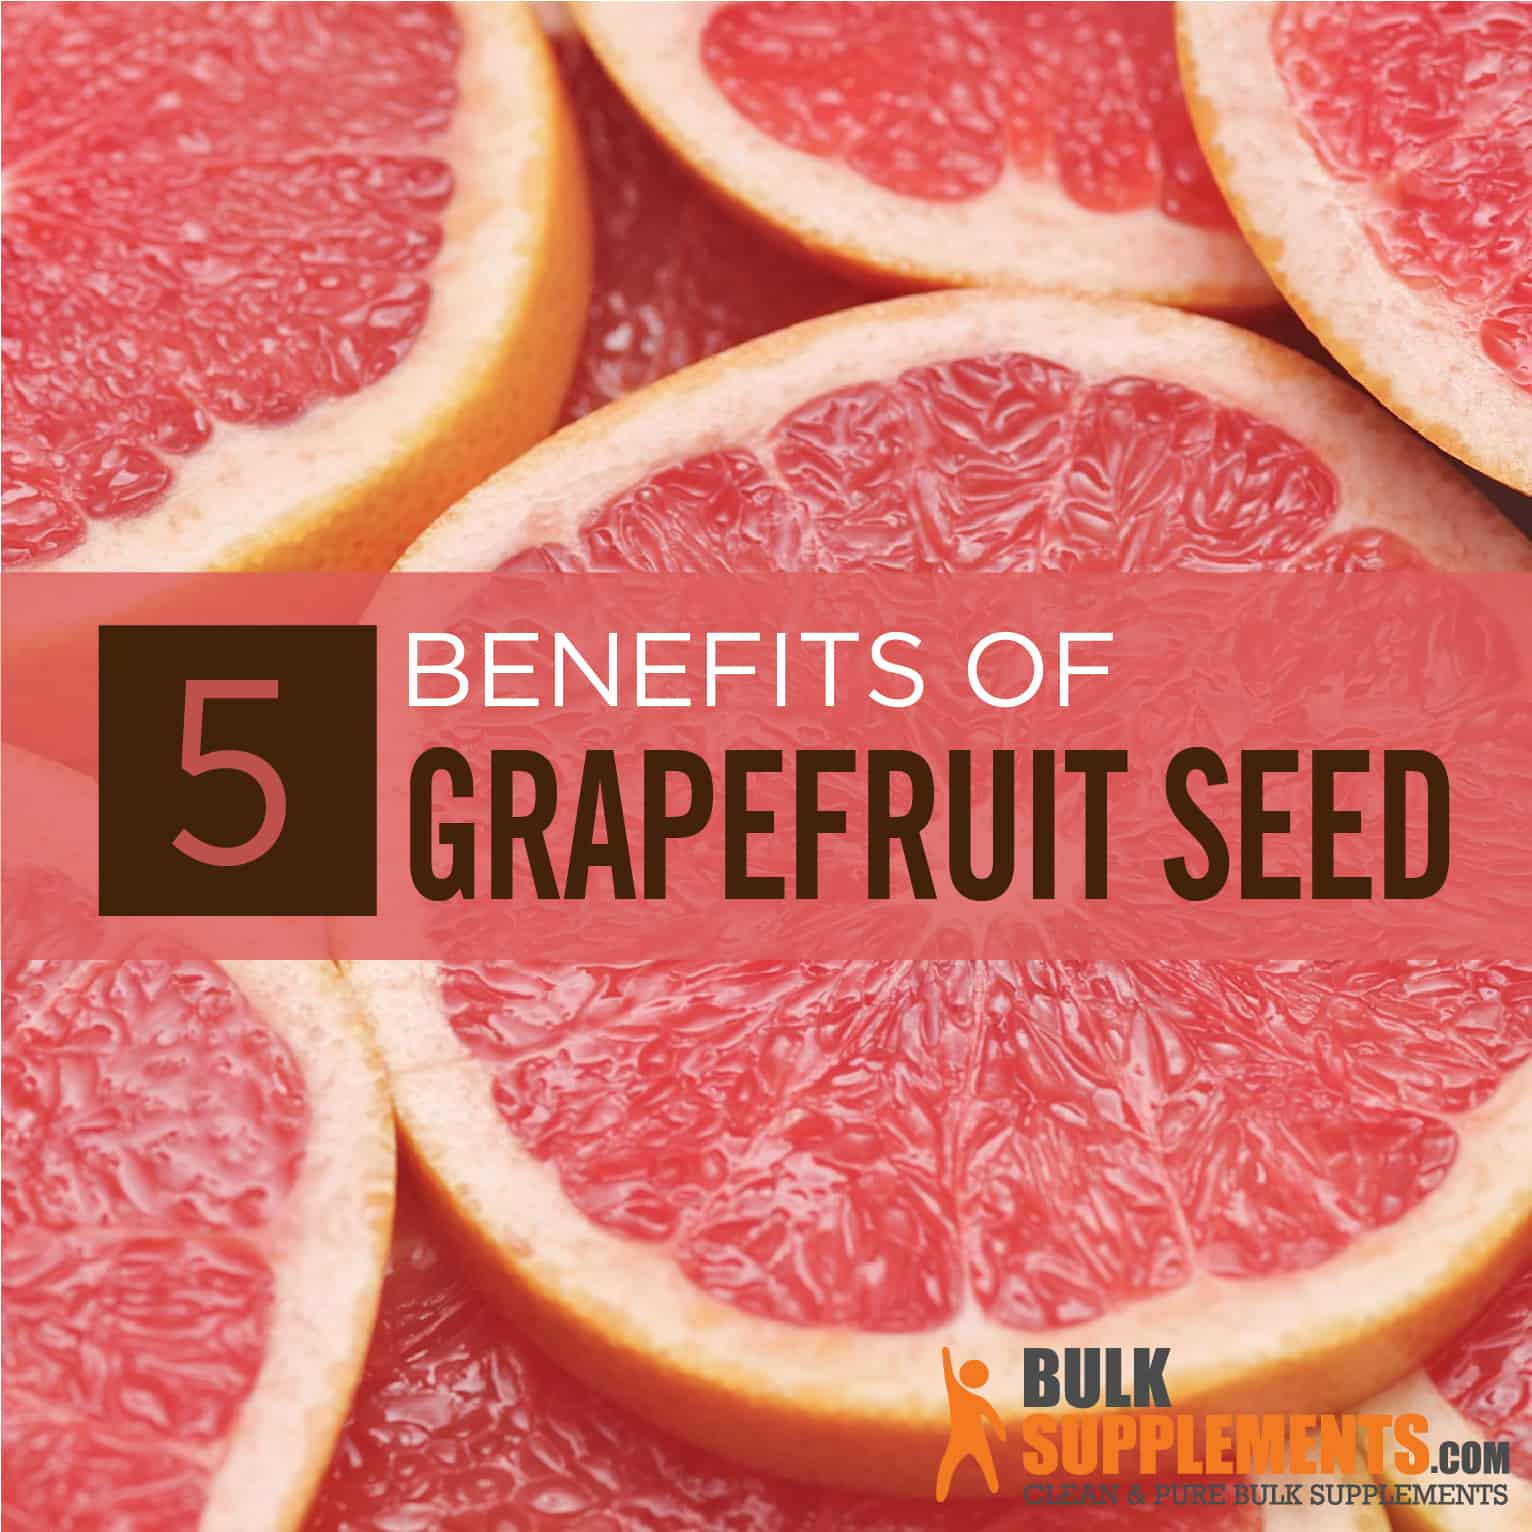 Grapefruit Seed